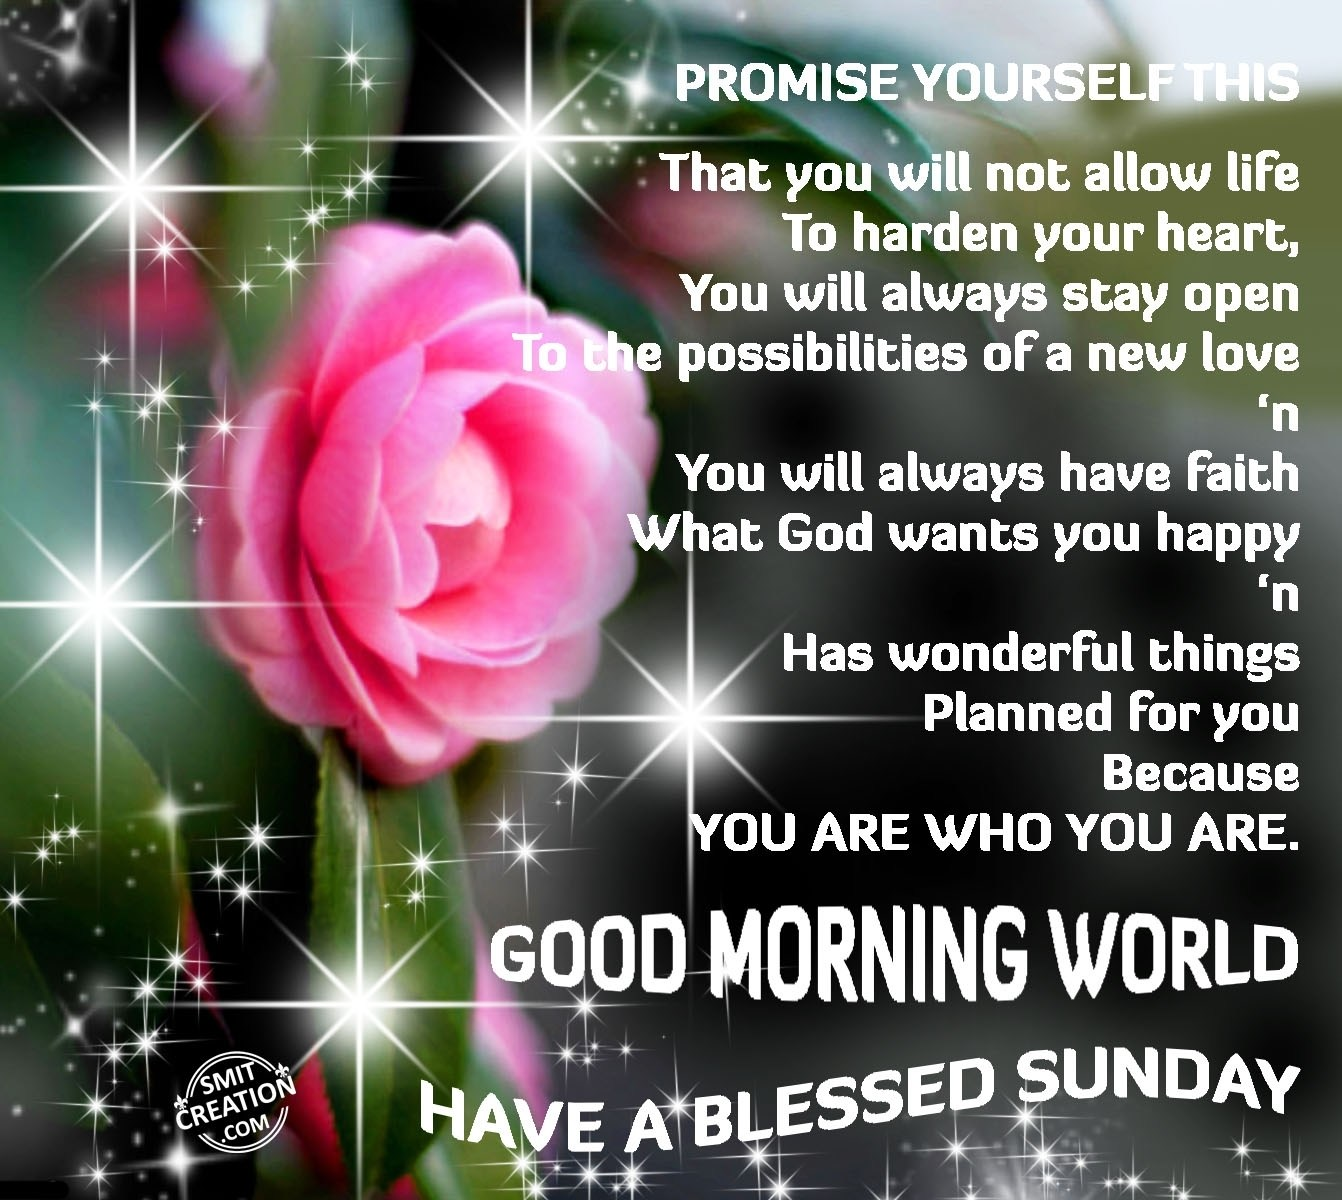 GOOD MORNING WORLD  HAVE A BLESSED SUNDAY - SmitCreation.com